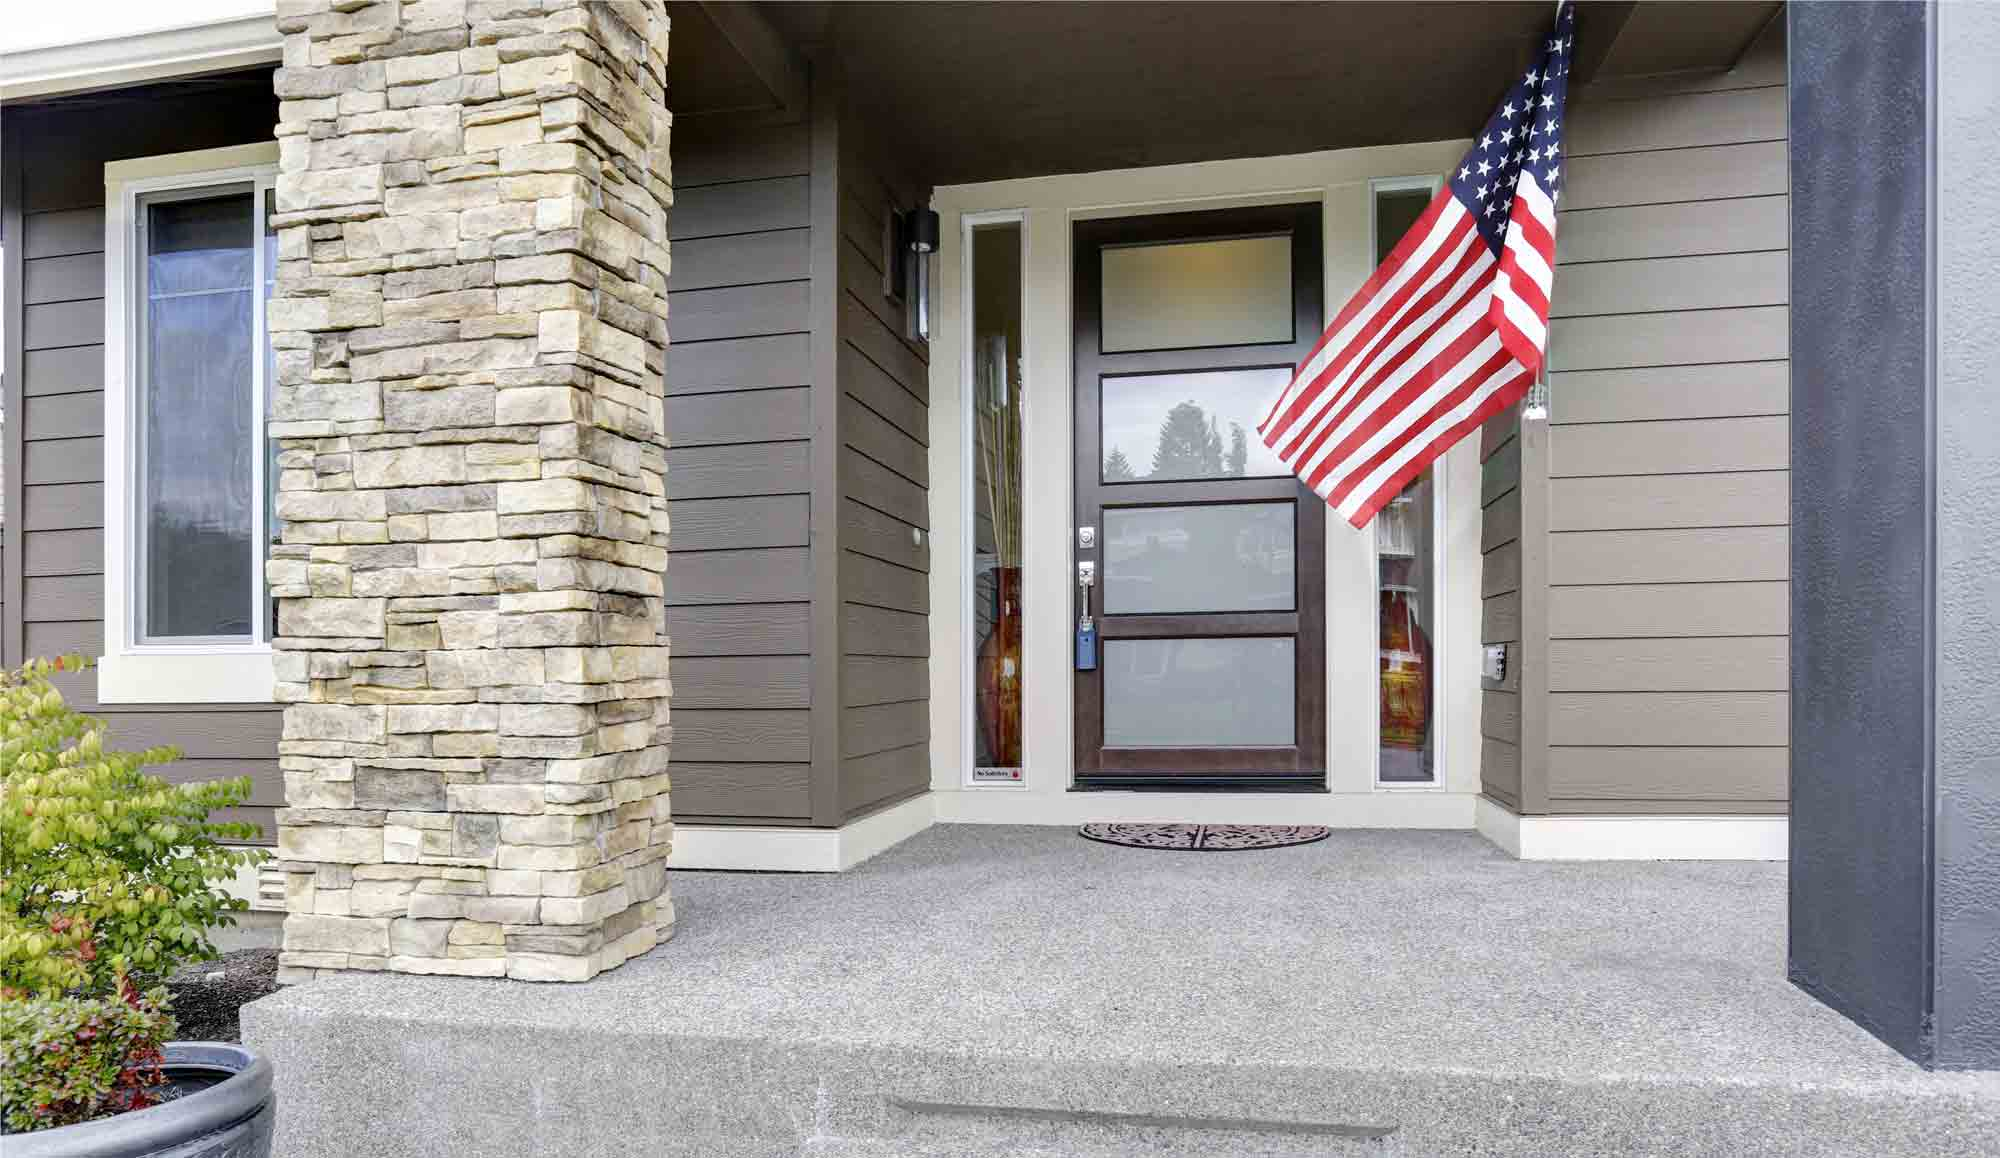 Front porch of a house with an American flag